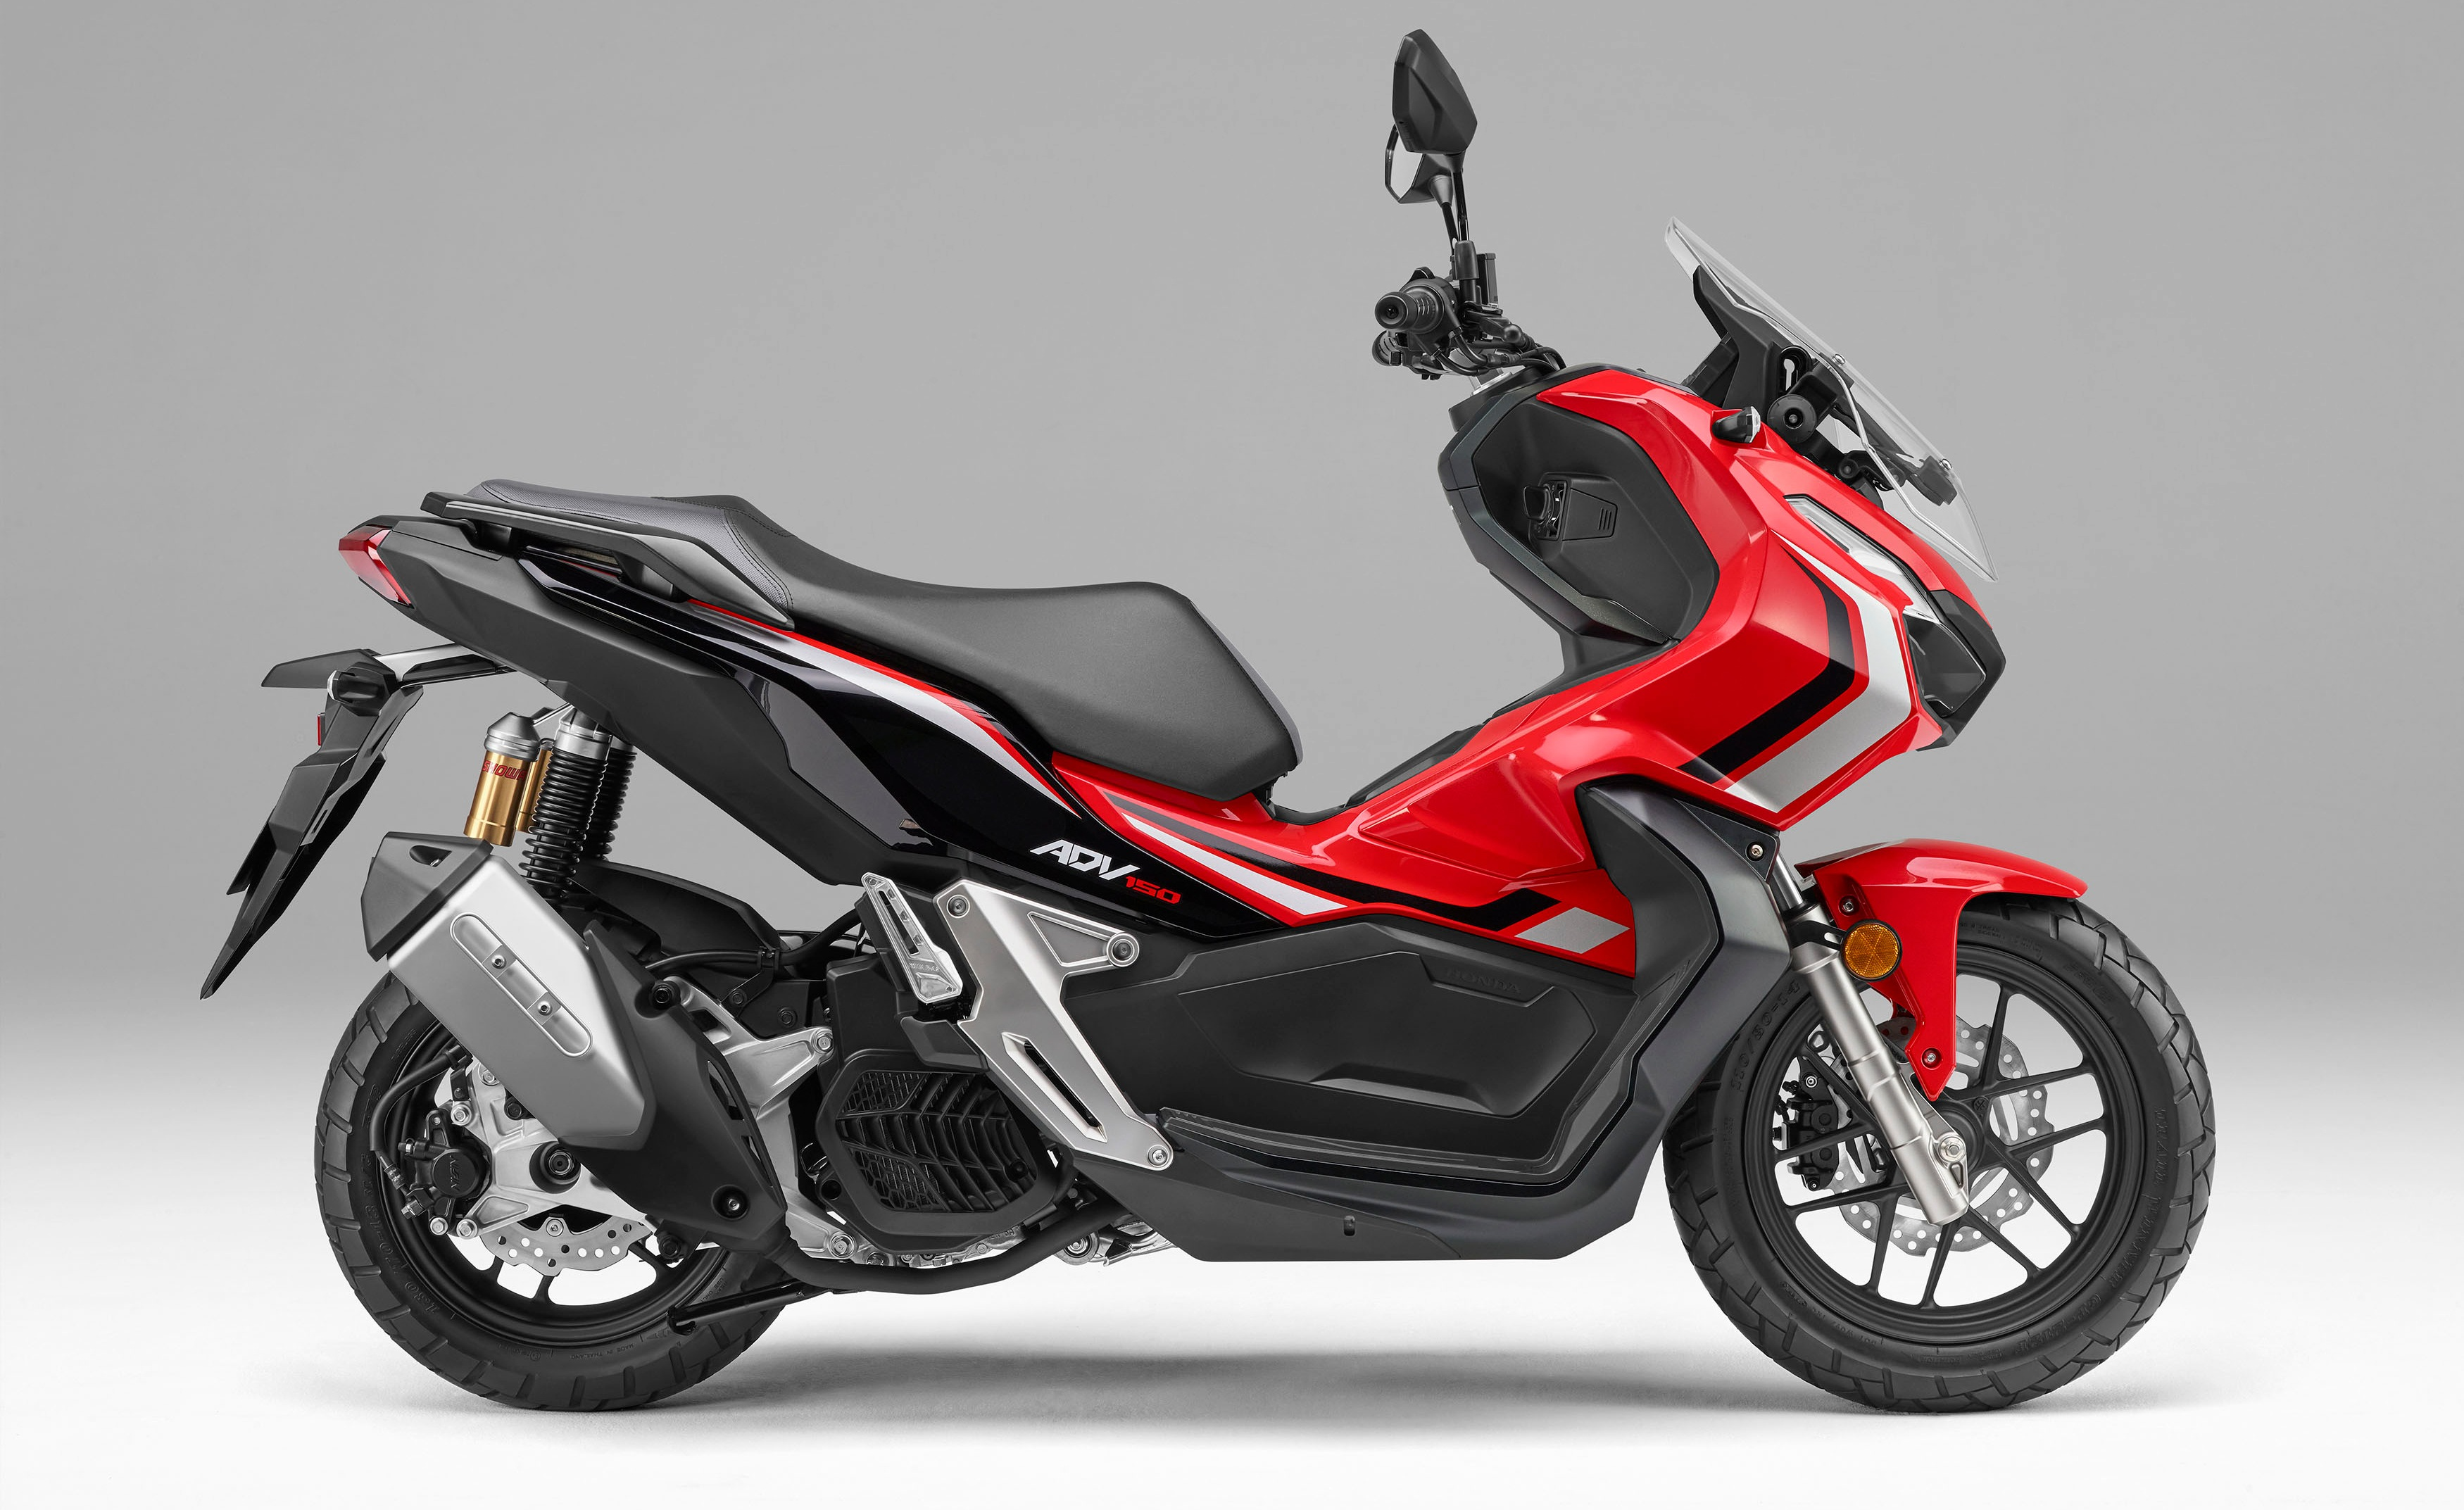 2021 honda adv150 certifiedcarb  motorcycle